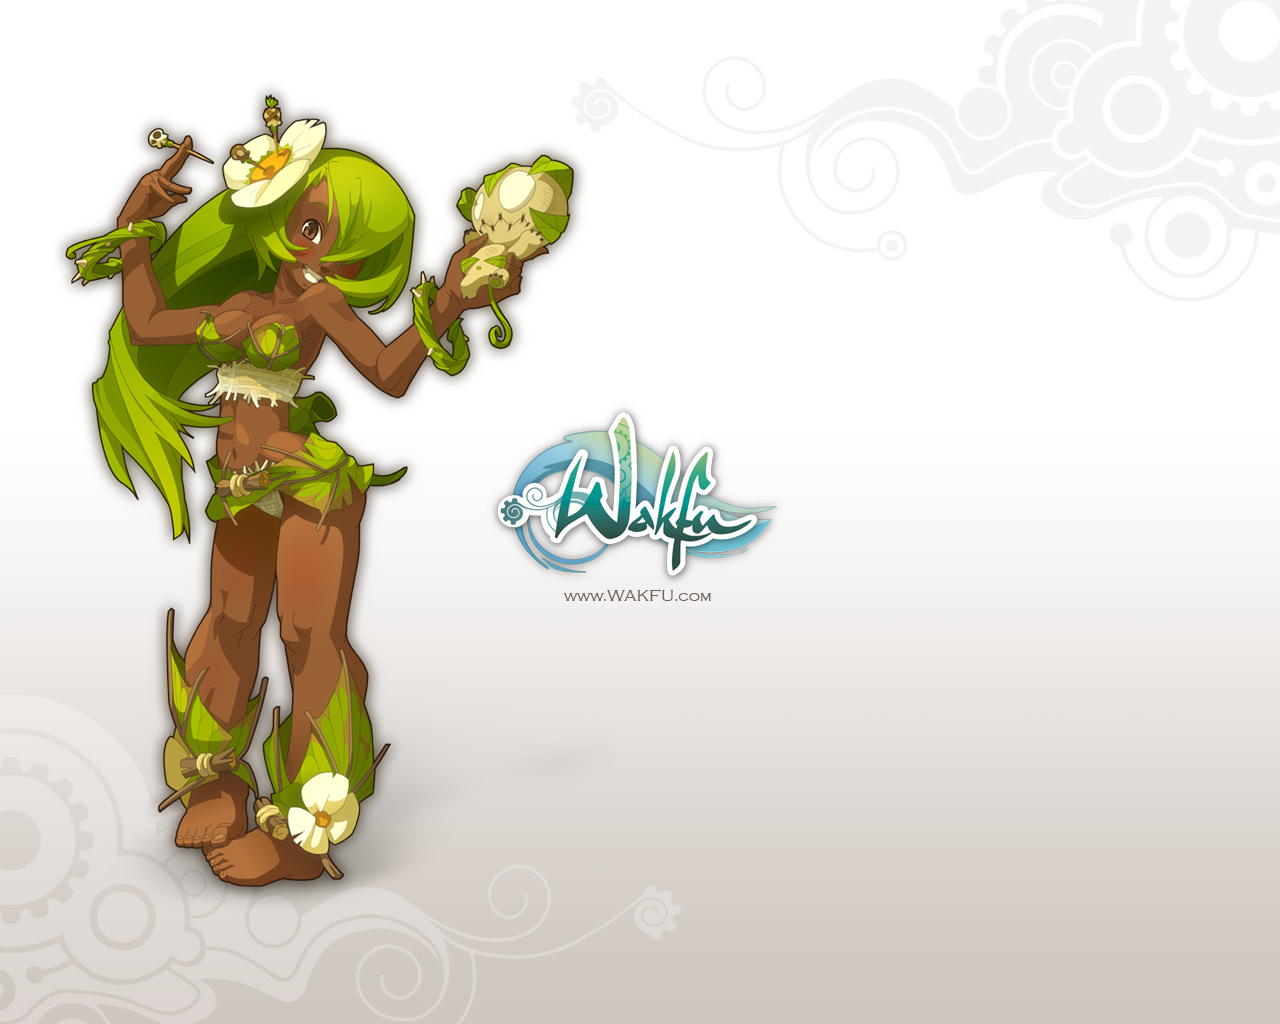 Amazing Wakfu Pictures & Backgrounds